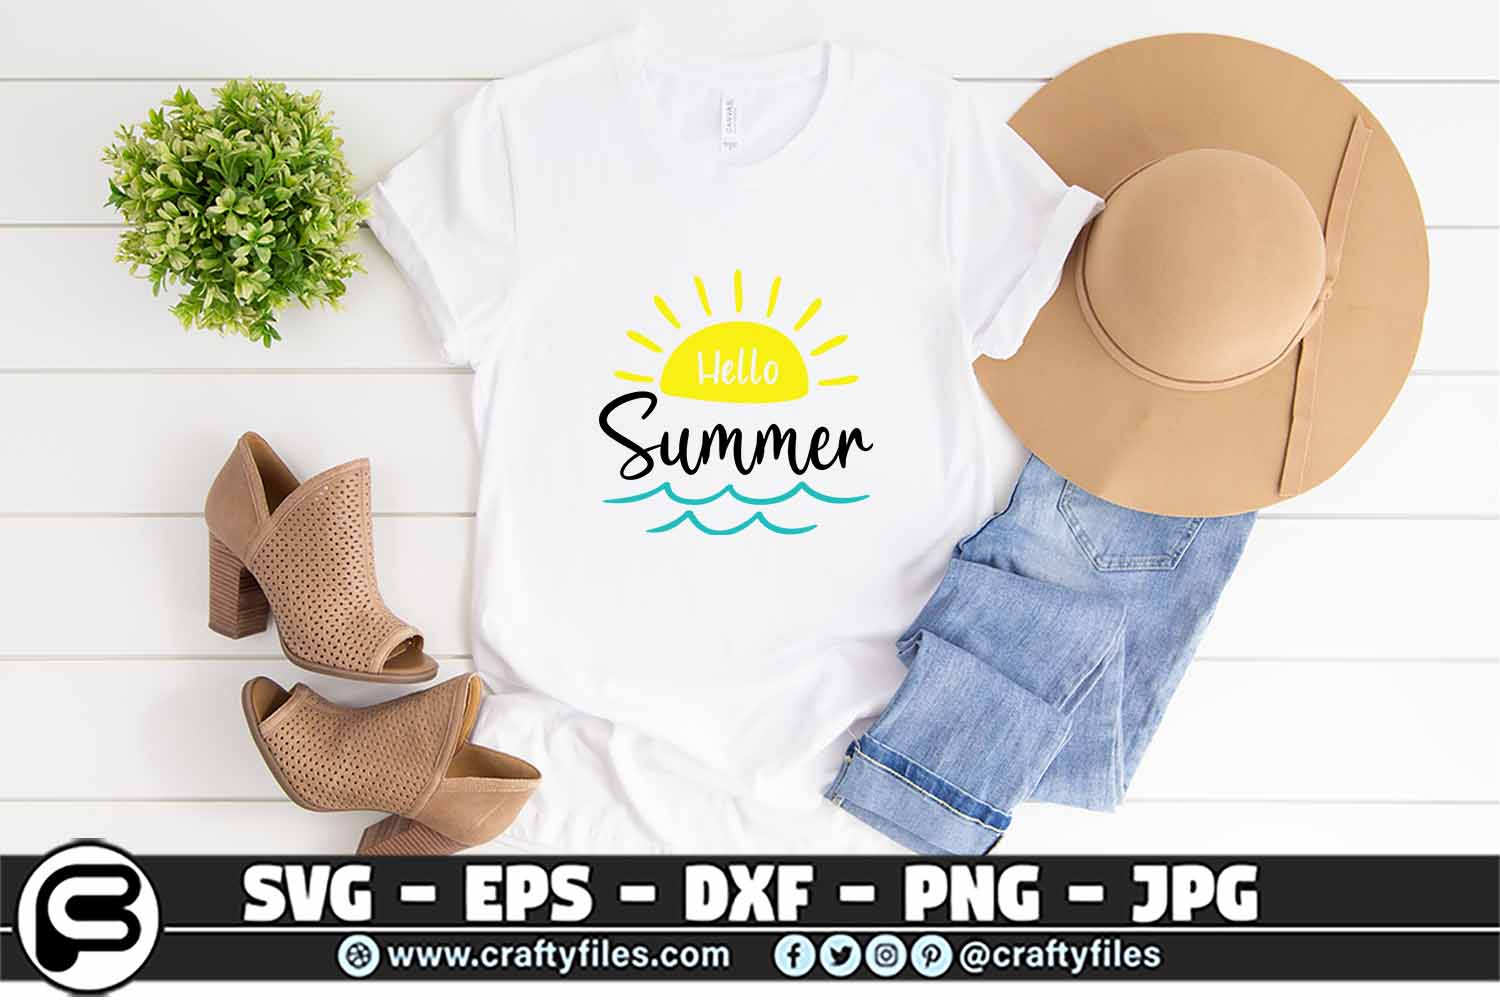 Hello Summer Svg Sunset Svg Beach Time Graphic By Crafty Files Creative Fabrica